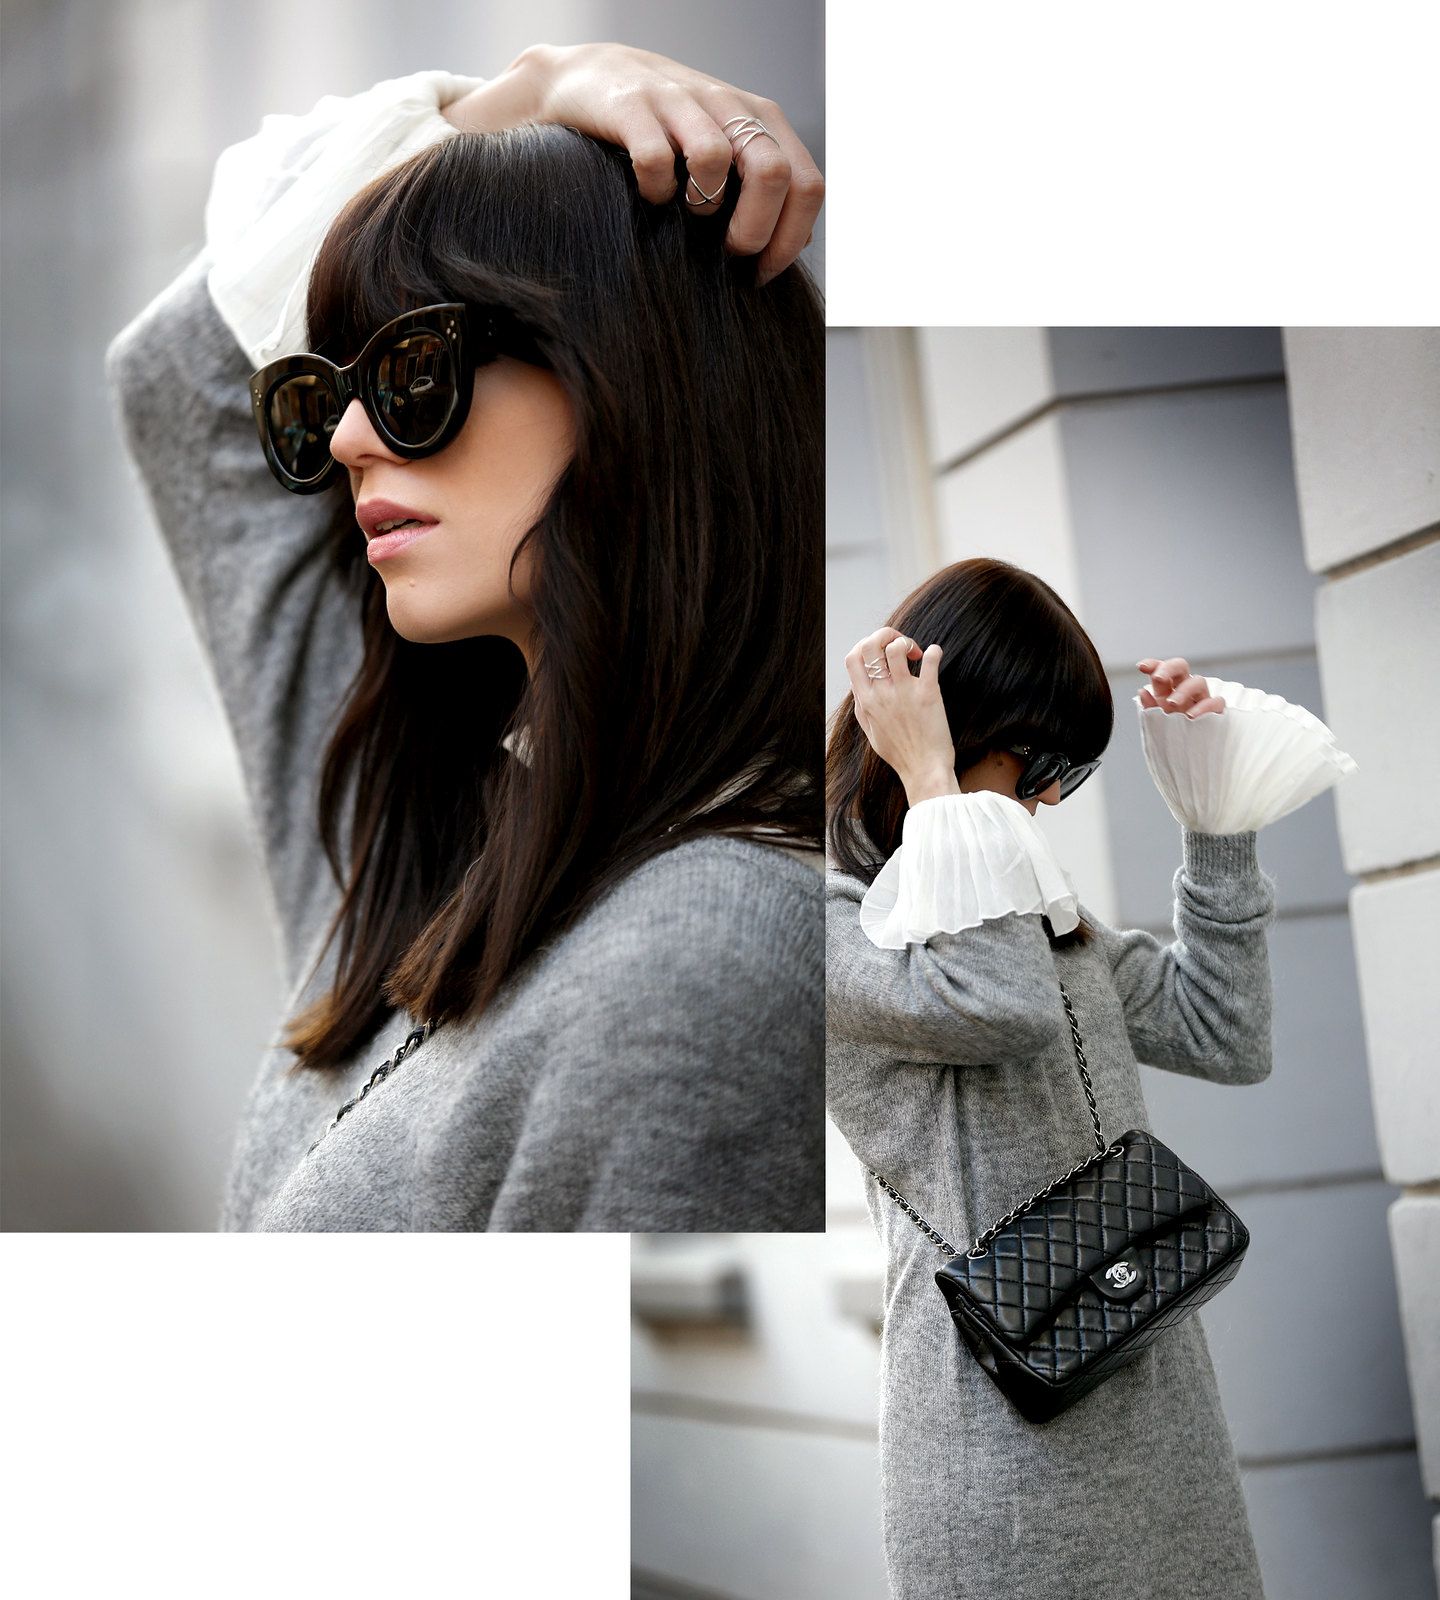 outfit h&m grey maxi knit dress bell sleeves hippie chanel 2.55 classic luxury bag black silver hardware sacha boots winter isabel marant étoile ootd fashionblogger ricarda schernus cats & dogs 5